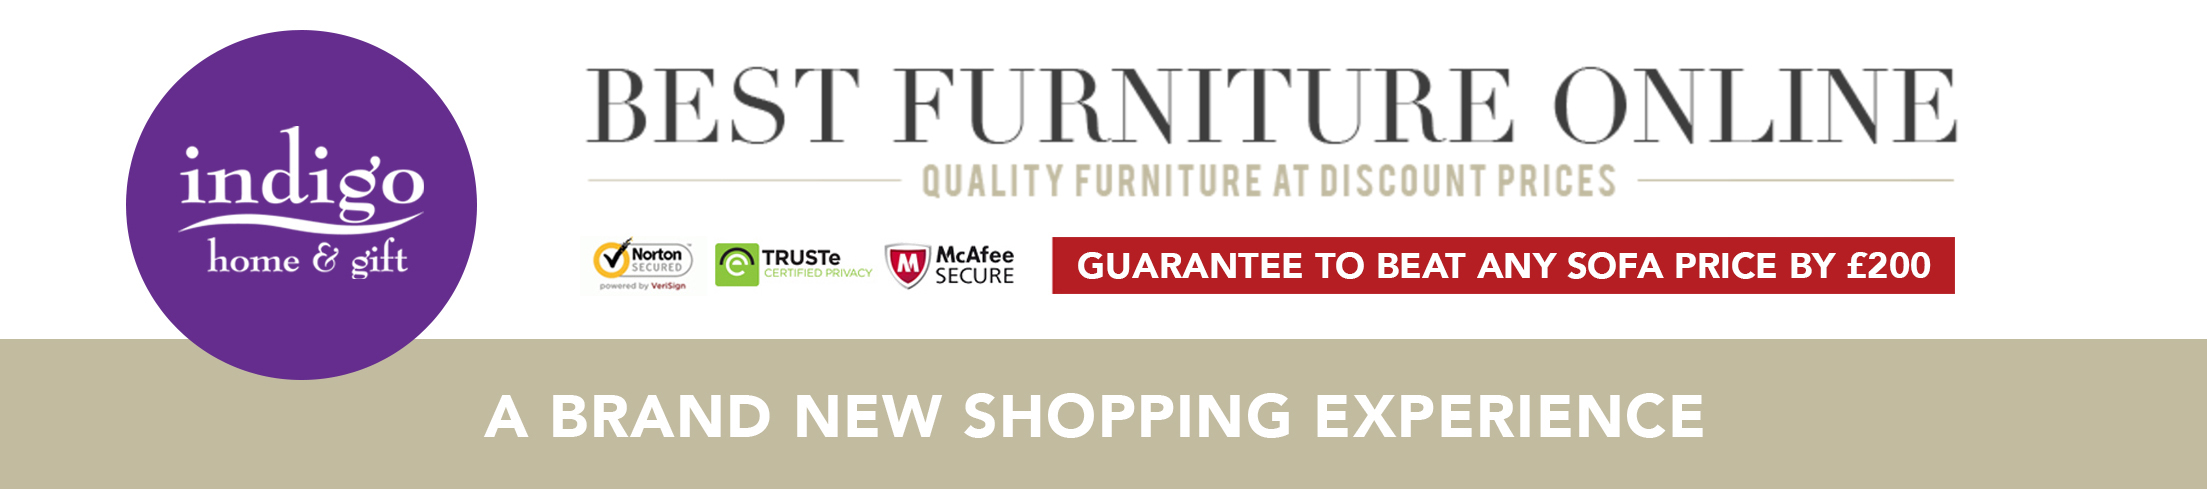 Best Furniture Online